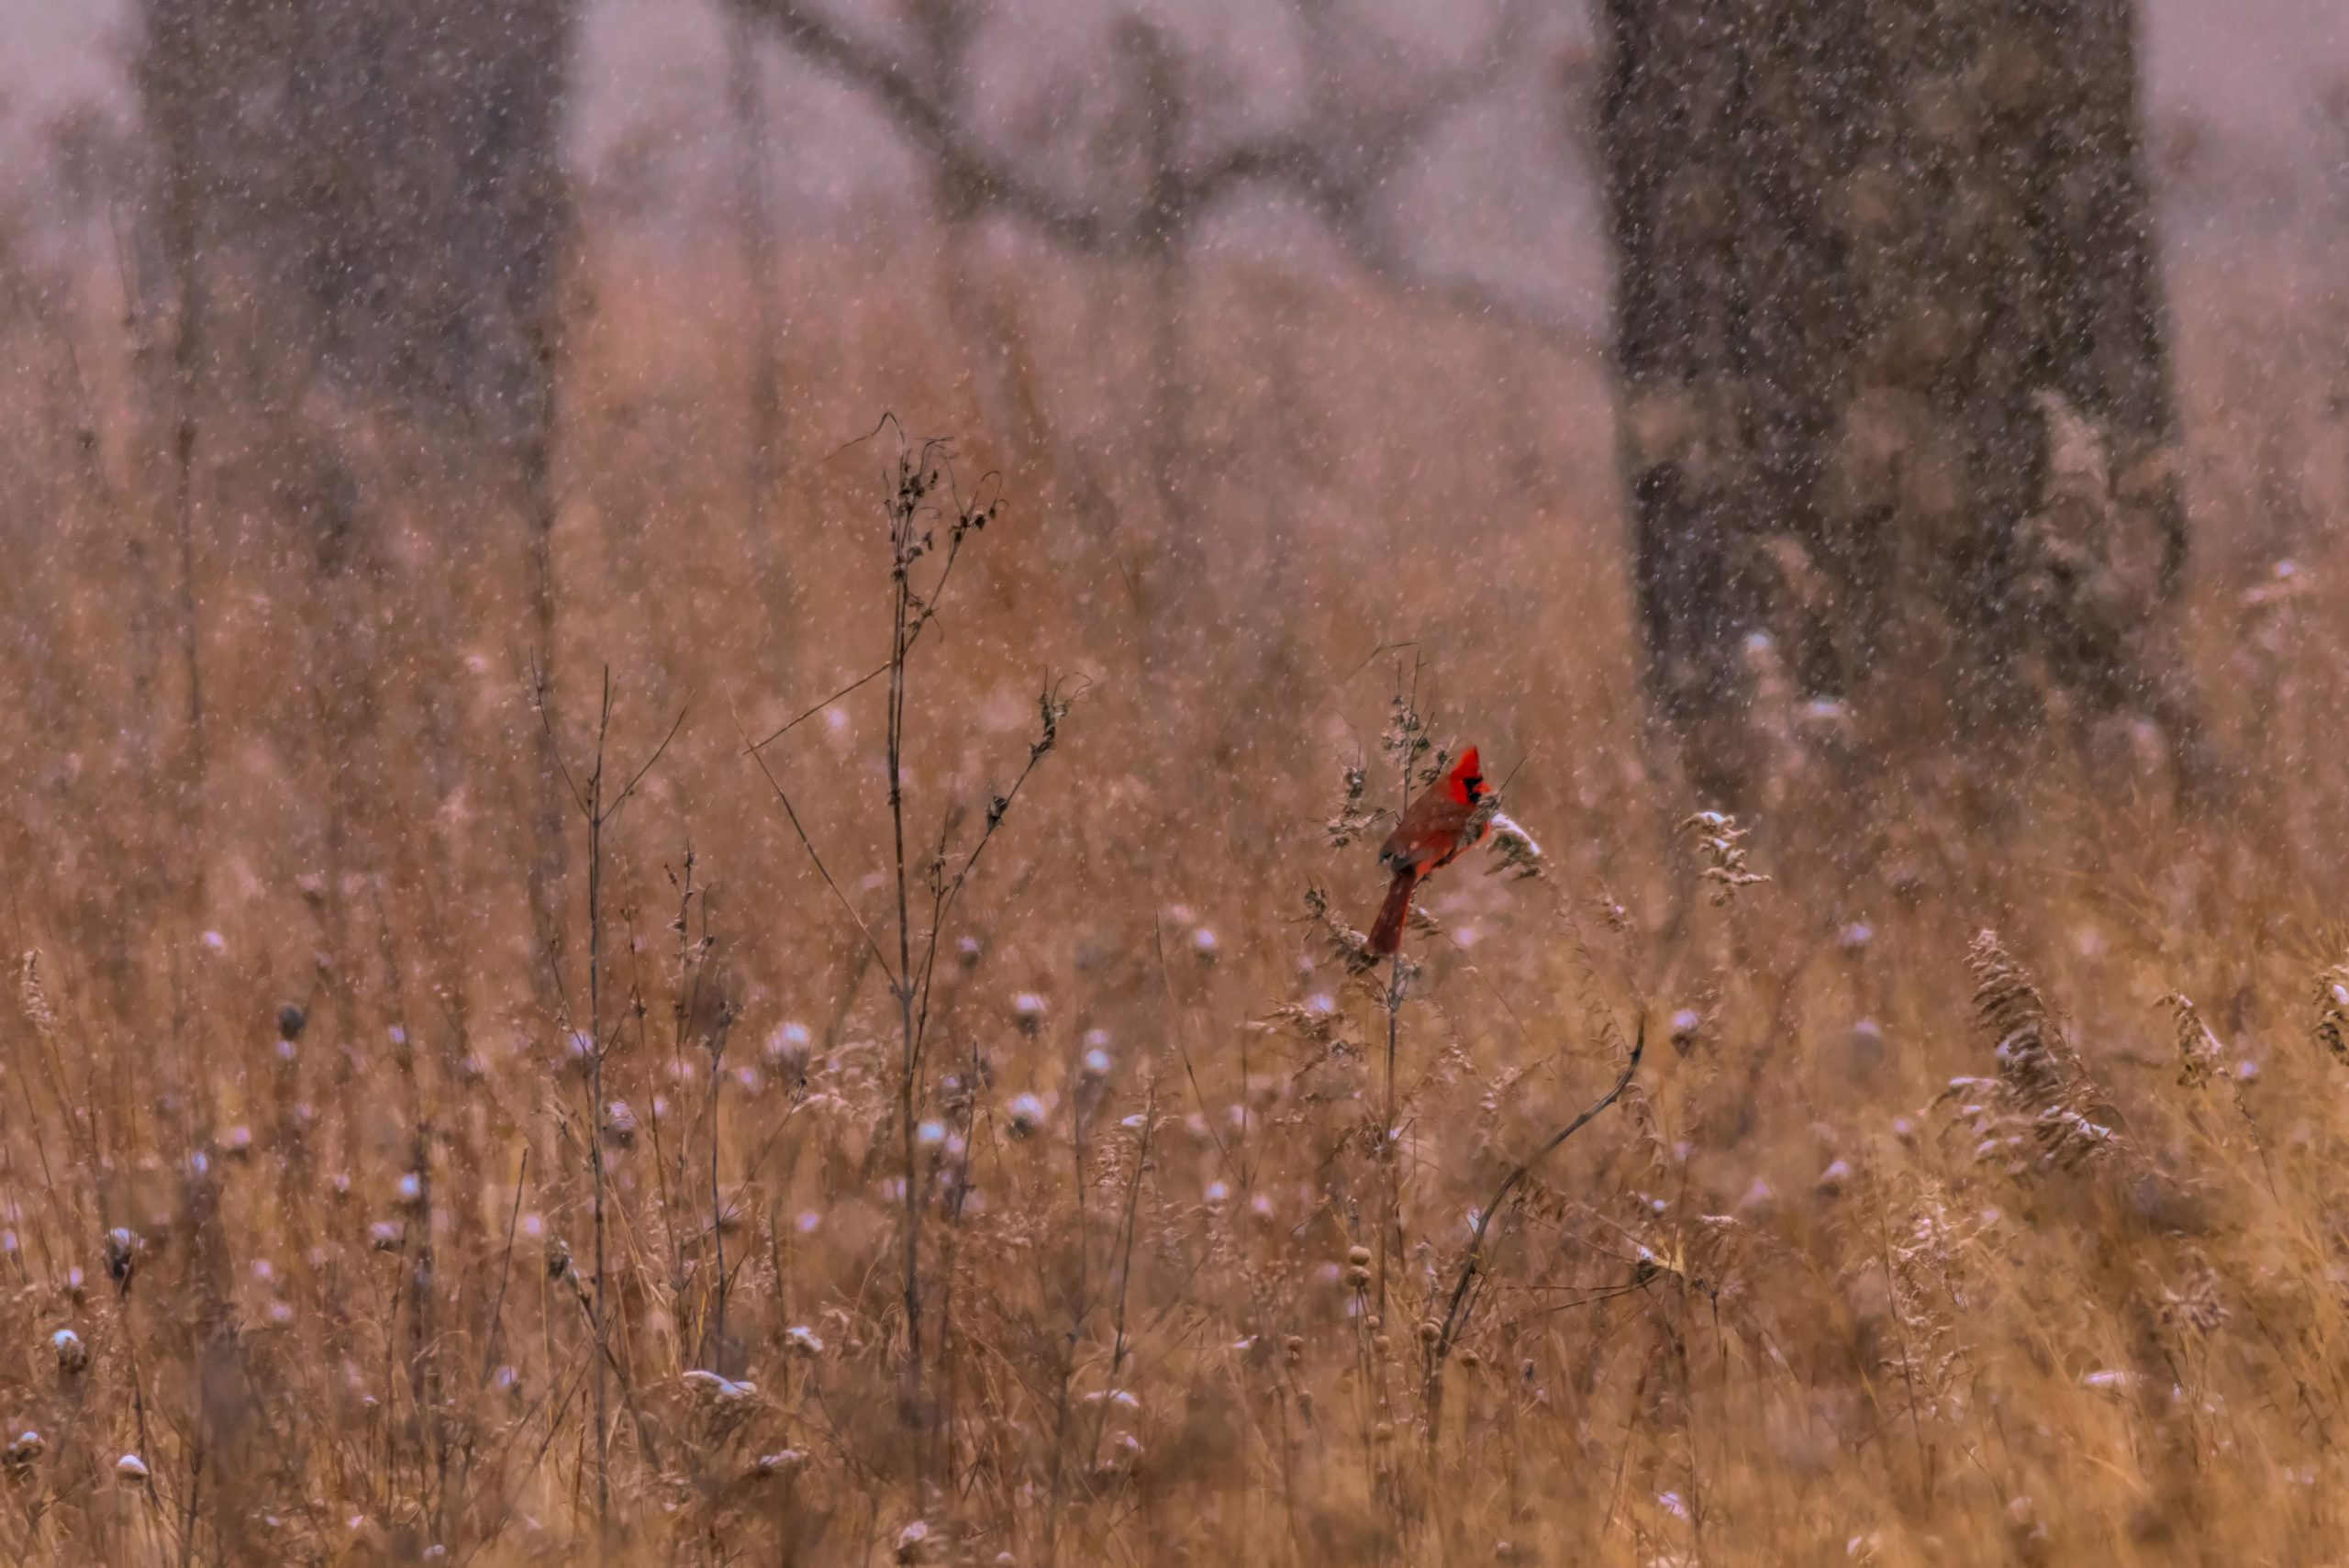 In late 2017, a cardinal alights on a plant in Betz Prairie. Photo: Tim Chapman, nature, wildlife, animal, bird, cardinal, prairie, winter